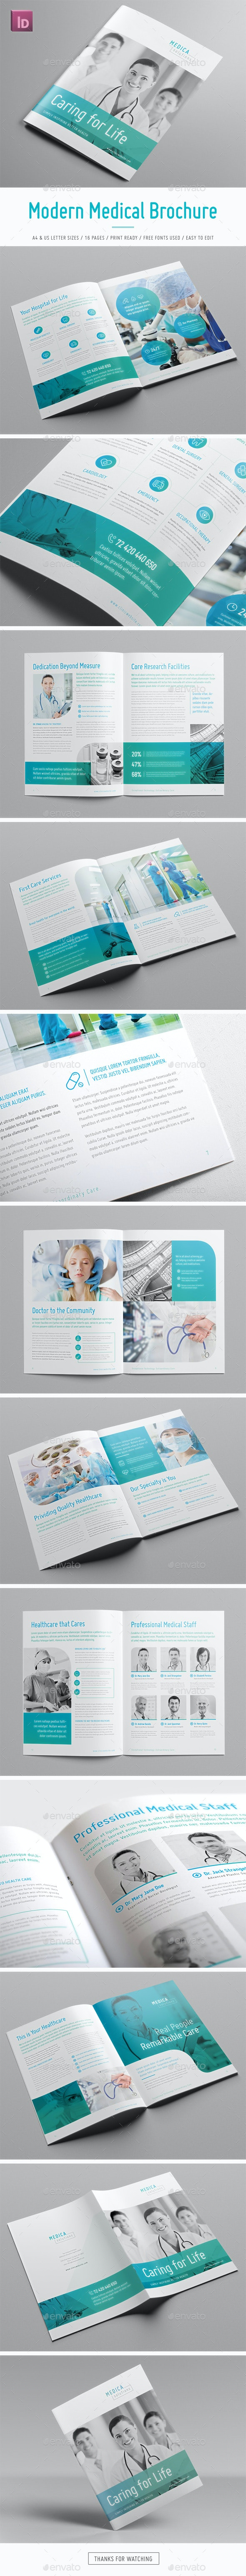 Modern Medical Brochure - Informational Brochures